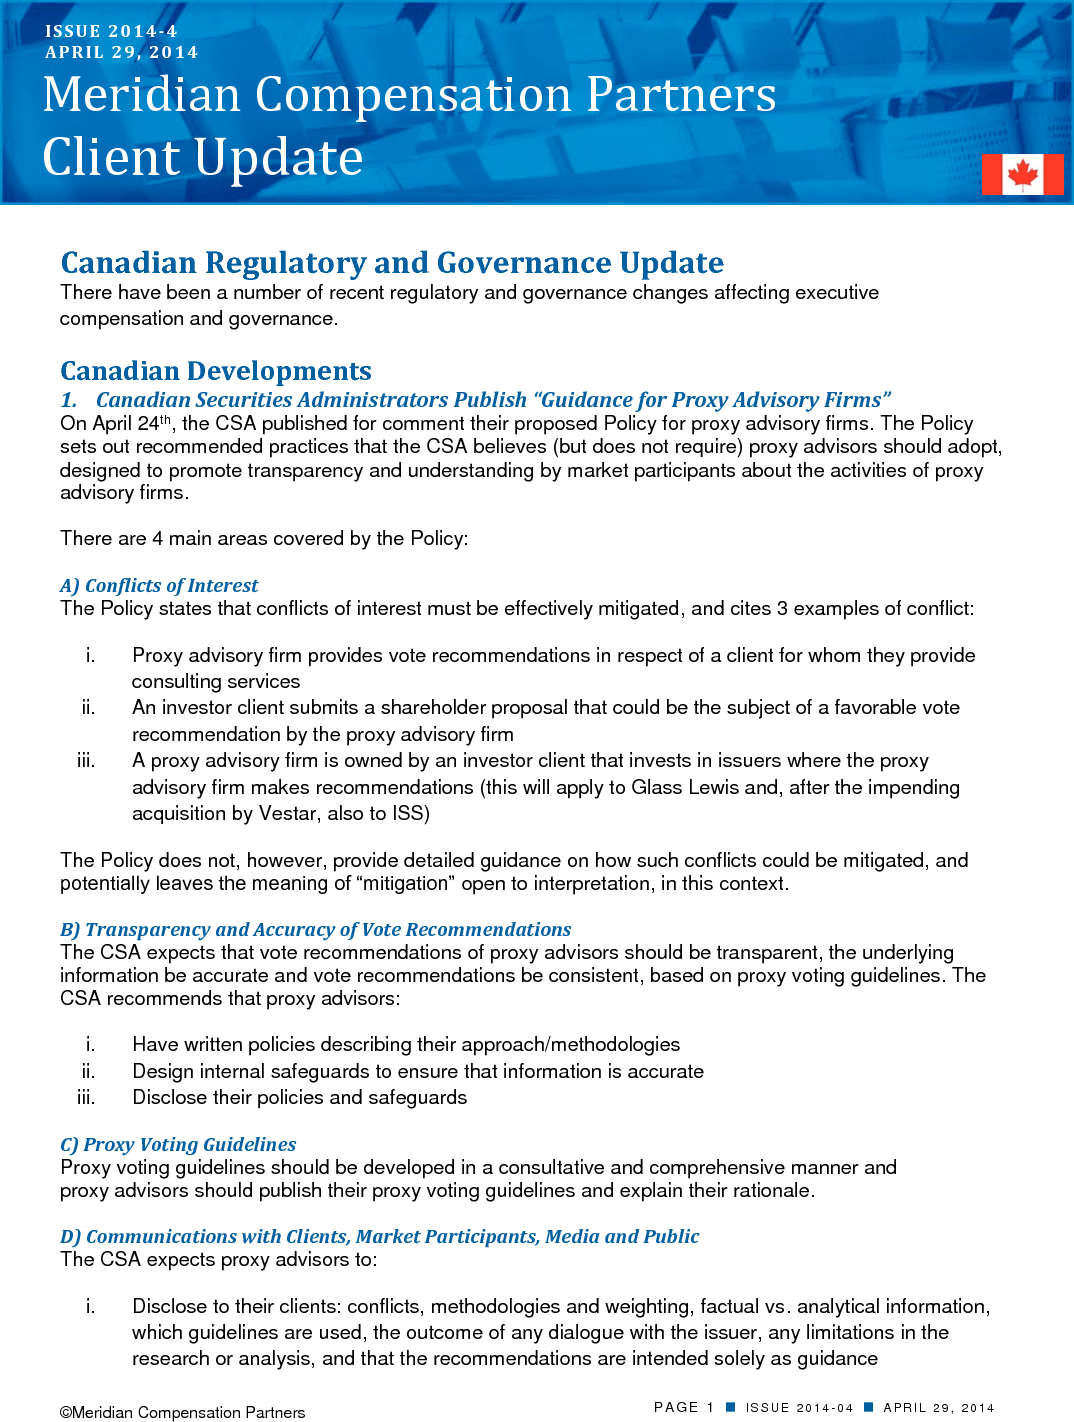 Canadian Regulatory and Governance Update (PDF)